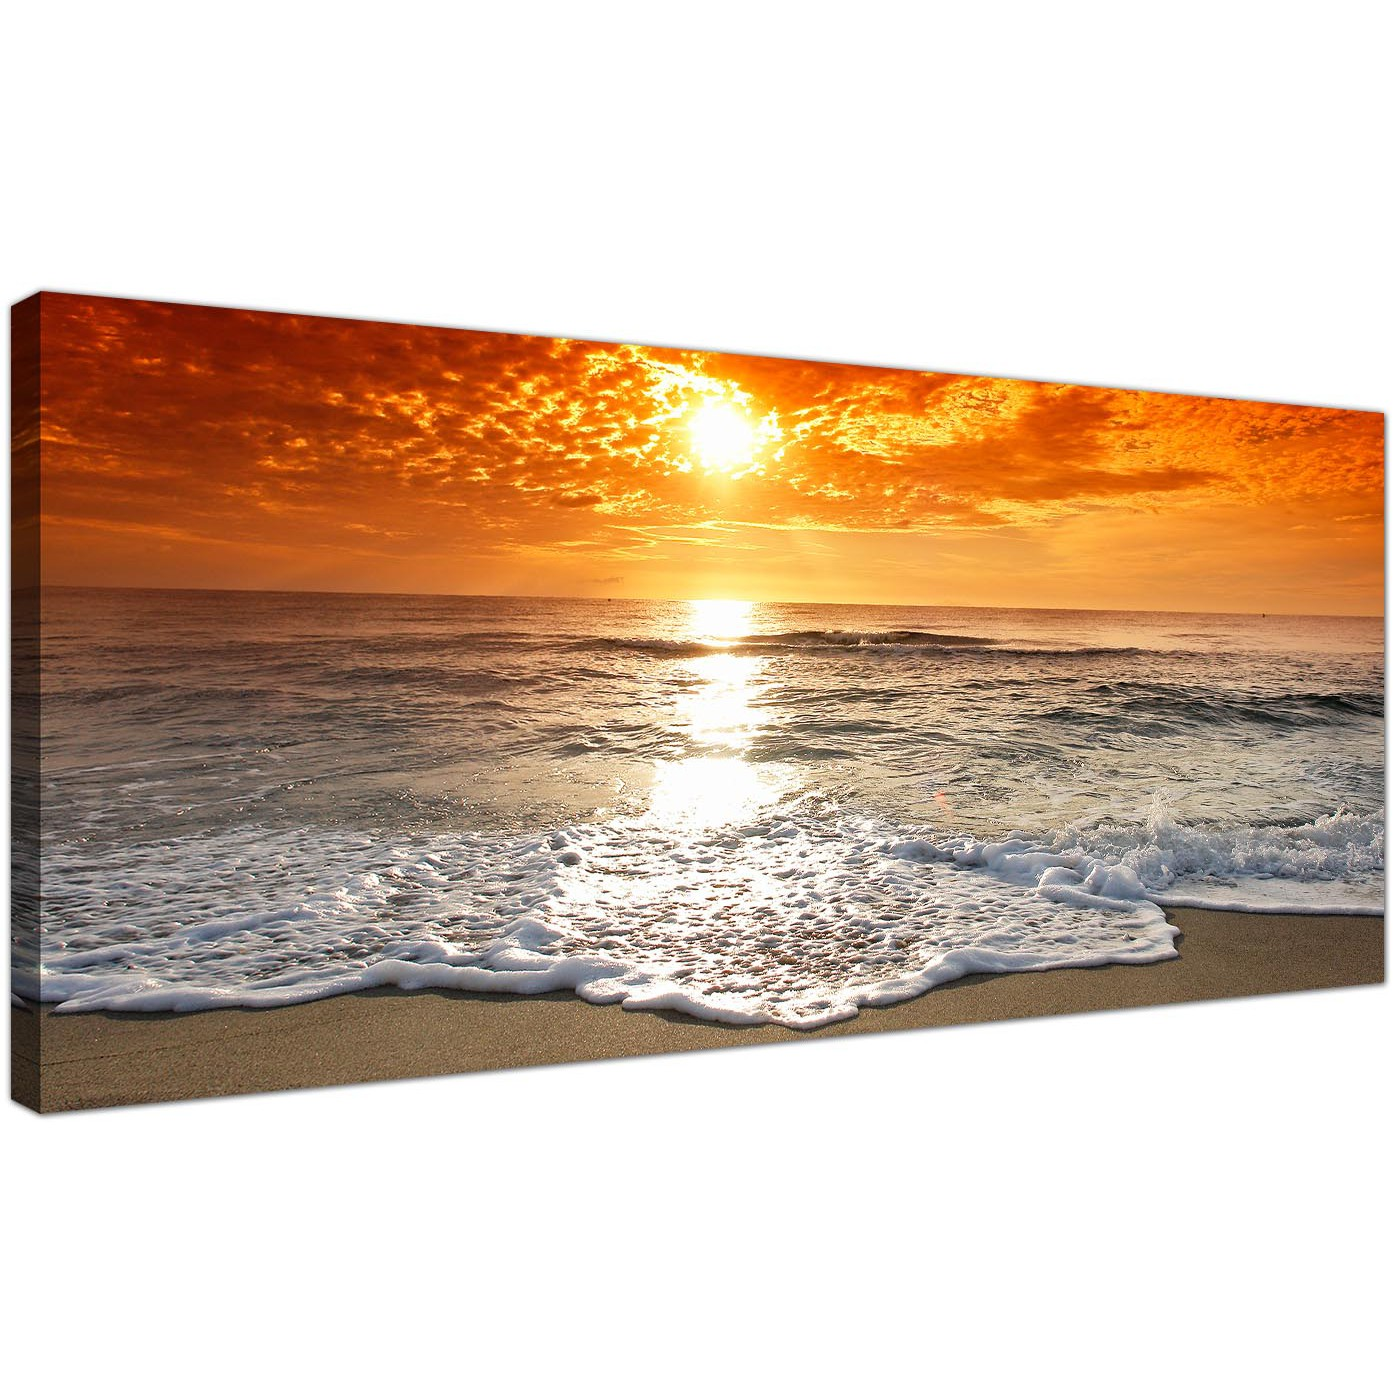 Interesting Display Gallery Item Canvas Prints Uk Orange Panoramic Display Gallery Item Cheap Canvas S A Beach Sunset Your Bedroom Panoramic Canvas Prints Online Uk Panoramic Canvas Prints Boots photos Panoramic Canvas Prints